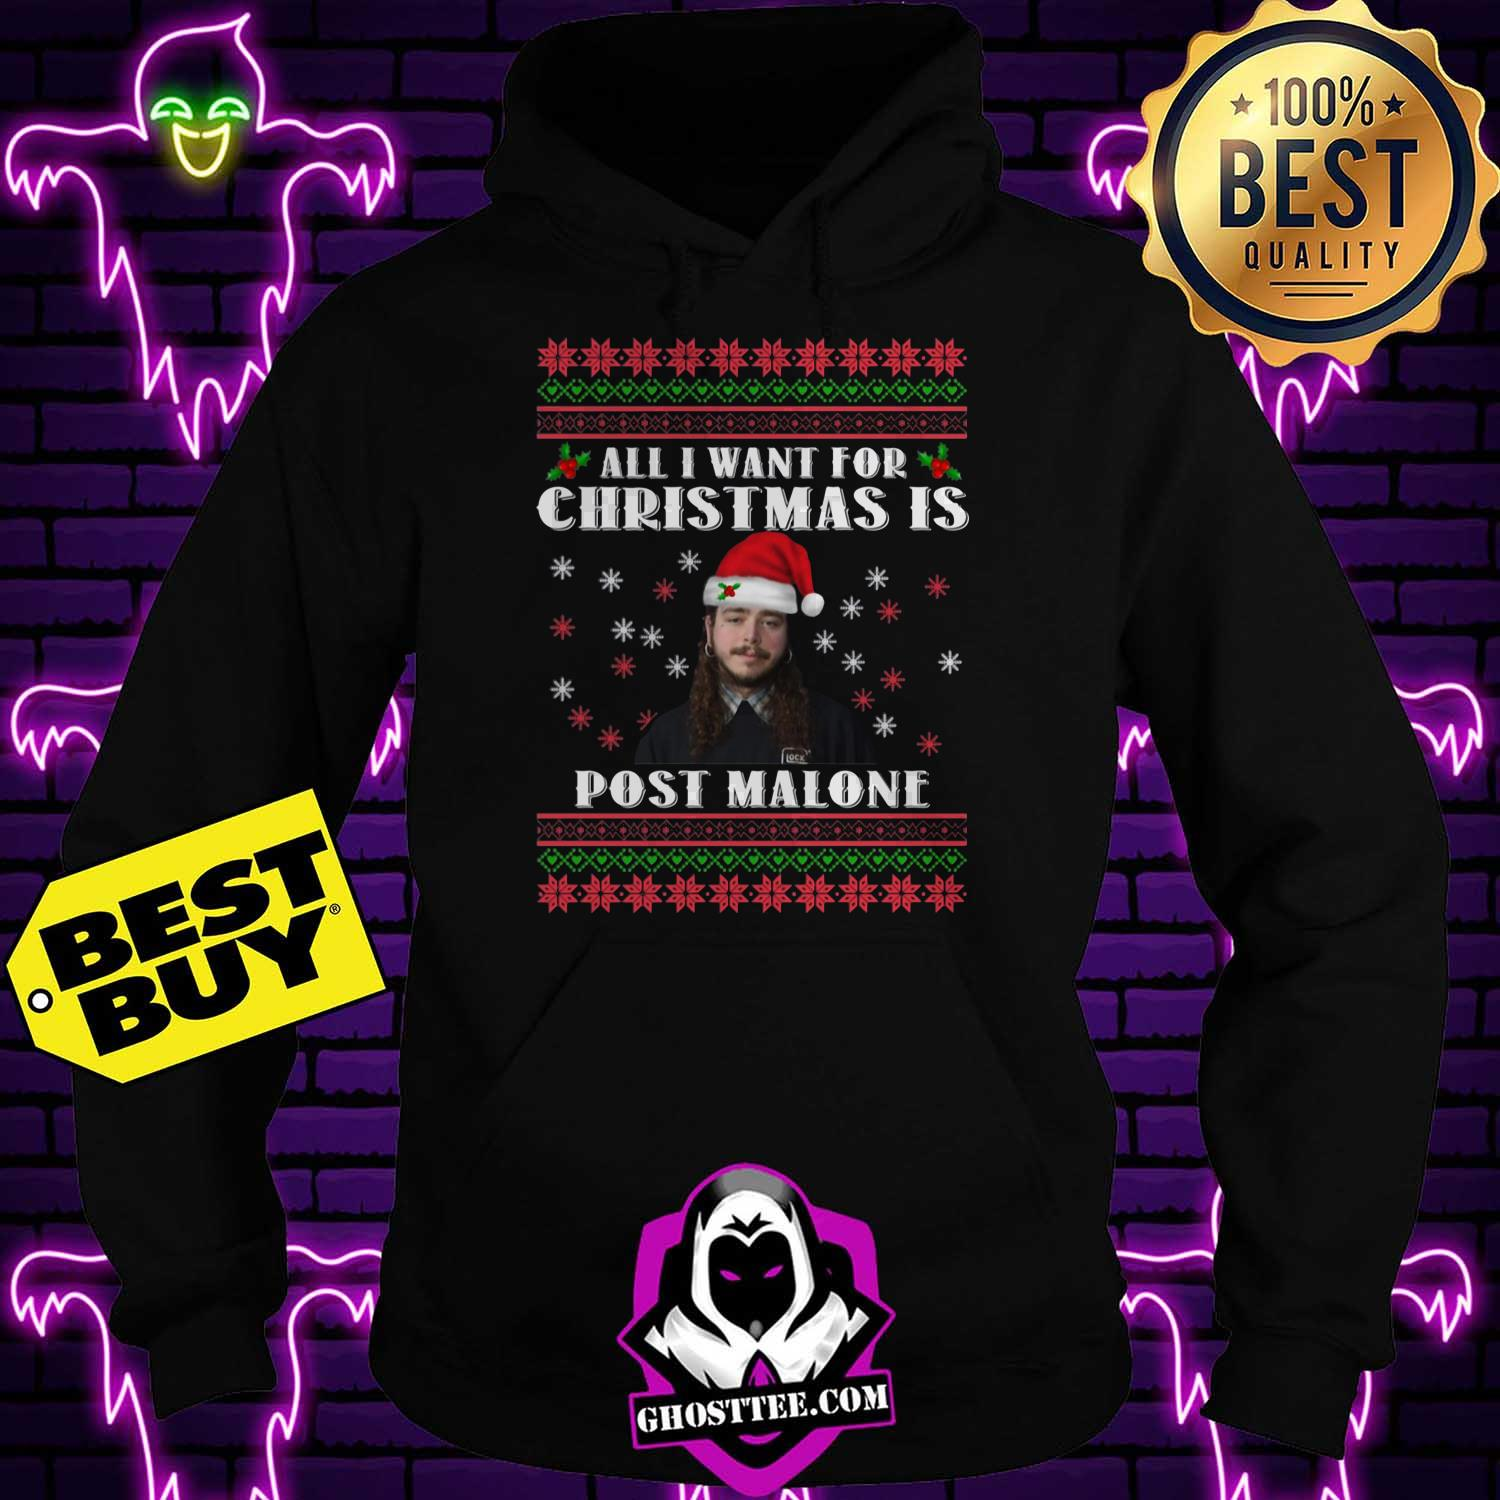 all i want for christmas is post malone hoodie - All I want for Christmas is Post Malone shirt